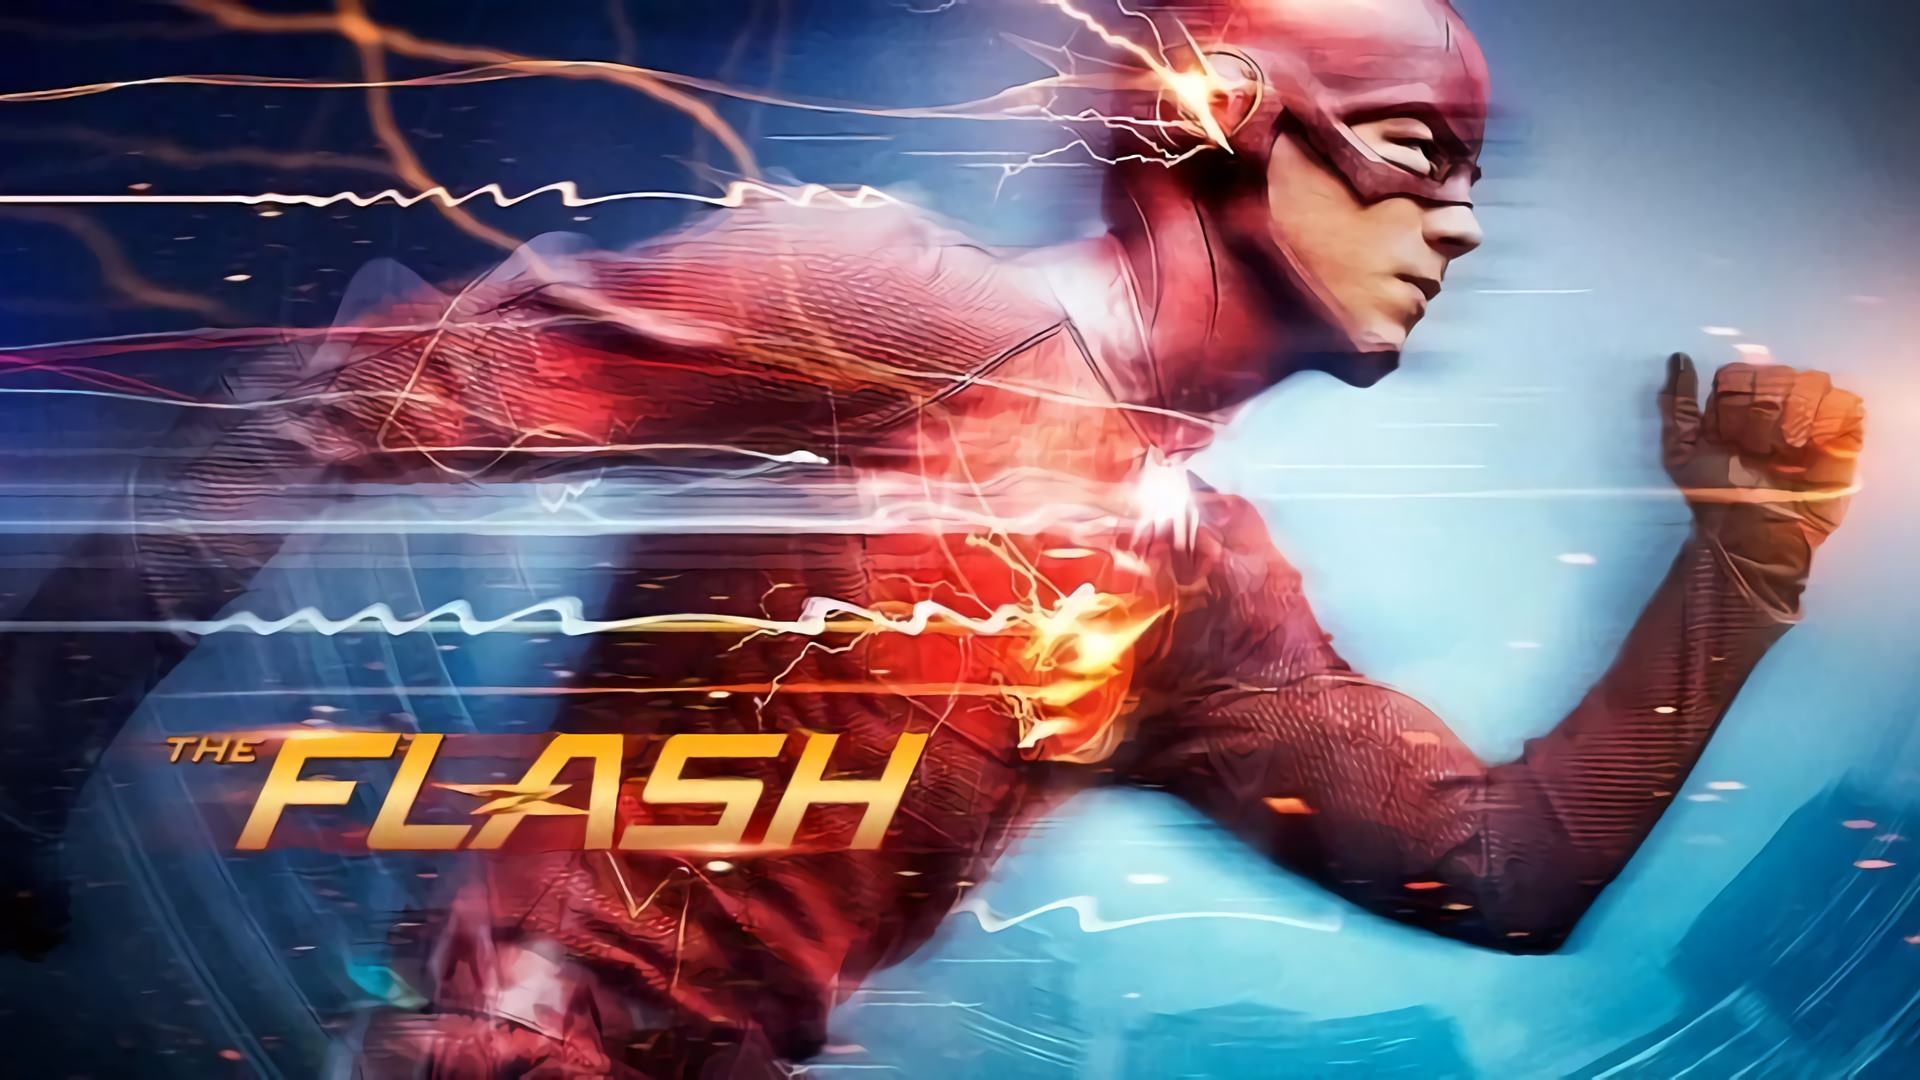 The Flash Tv Wallpapers Top Free The Flash Tv Backgrounds